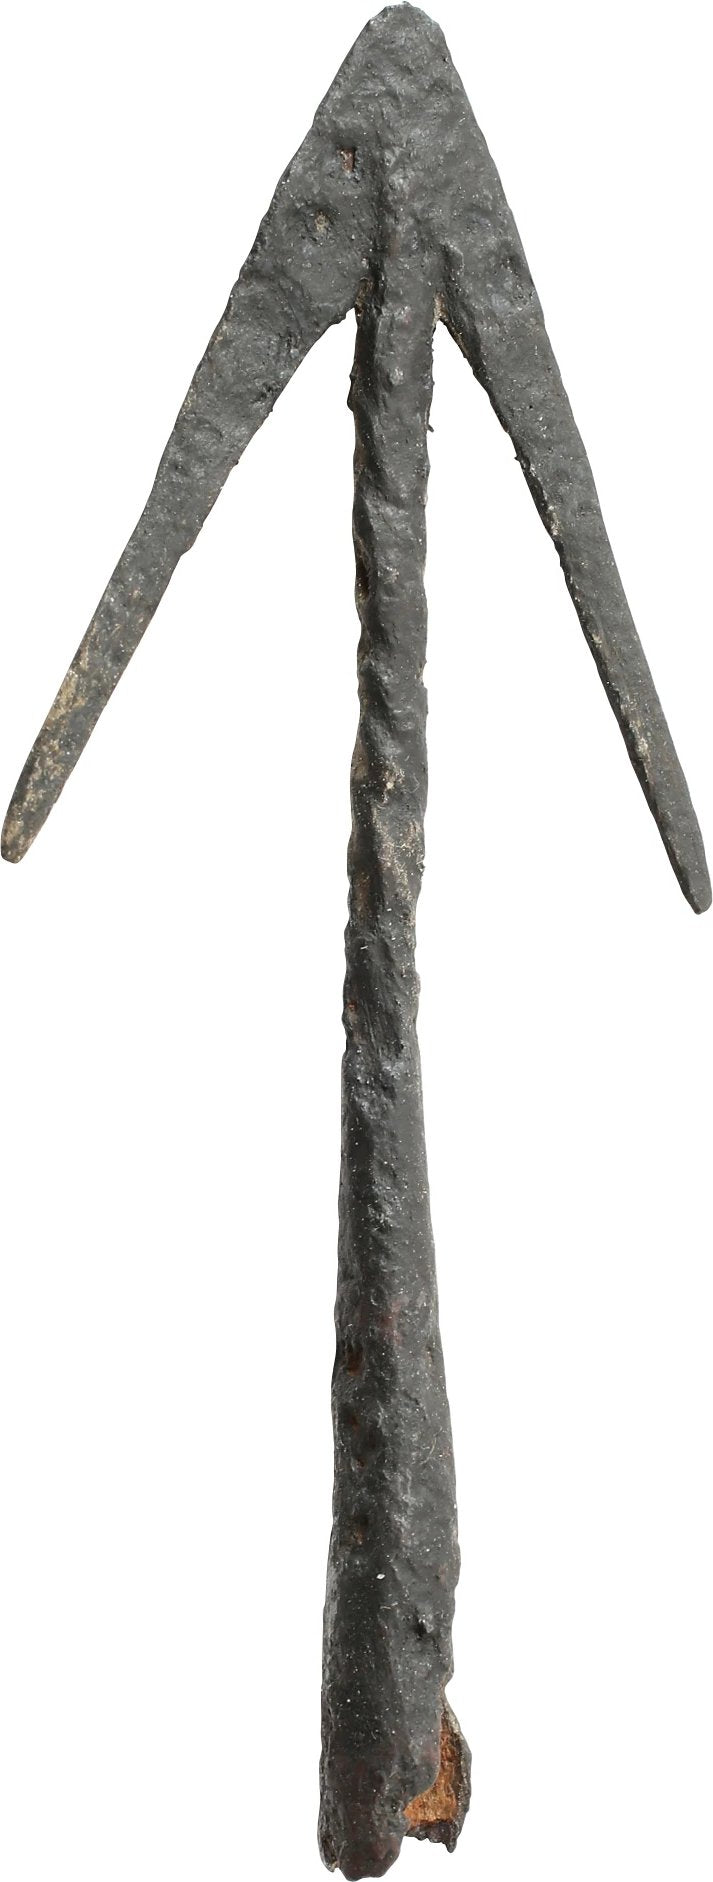 ELEGANT CRUSADER'S JAVELIN HEAD, MID 13TH CENTURY